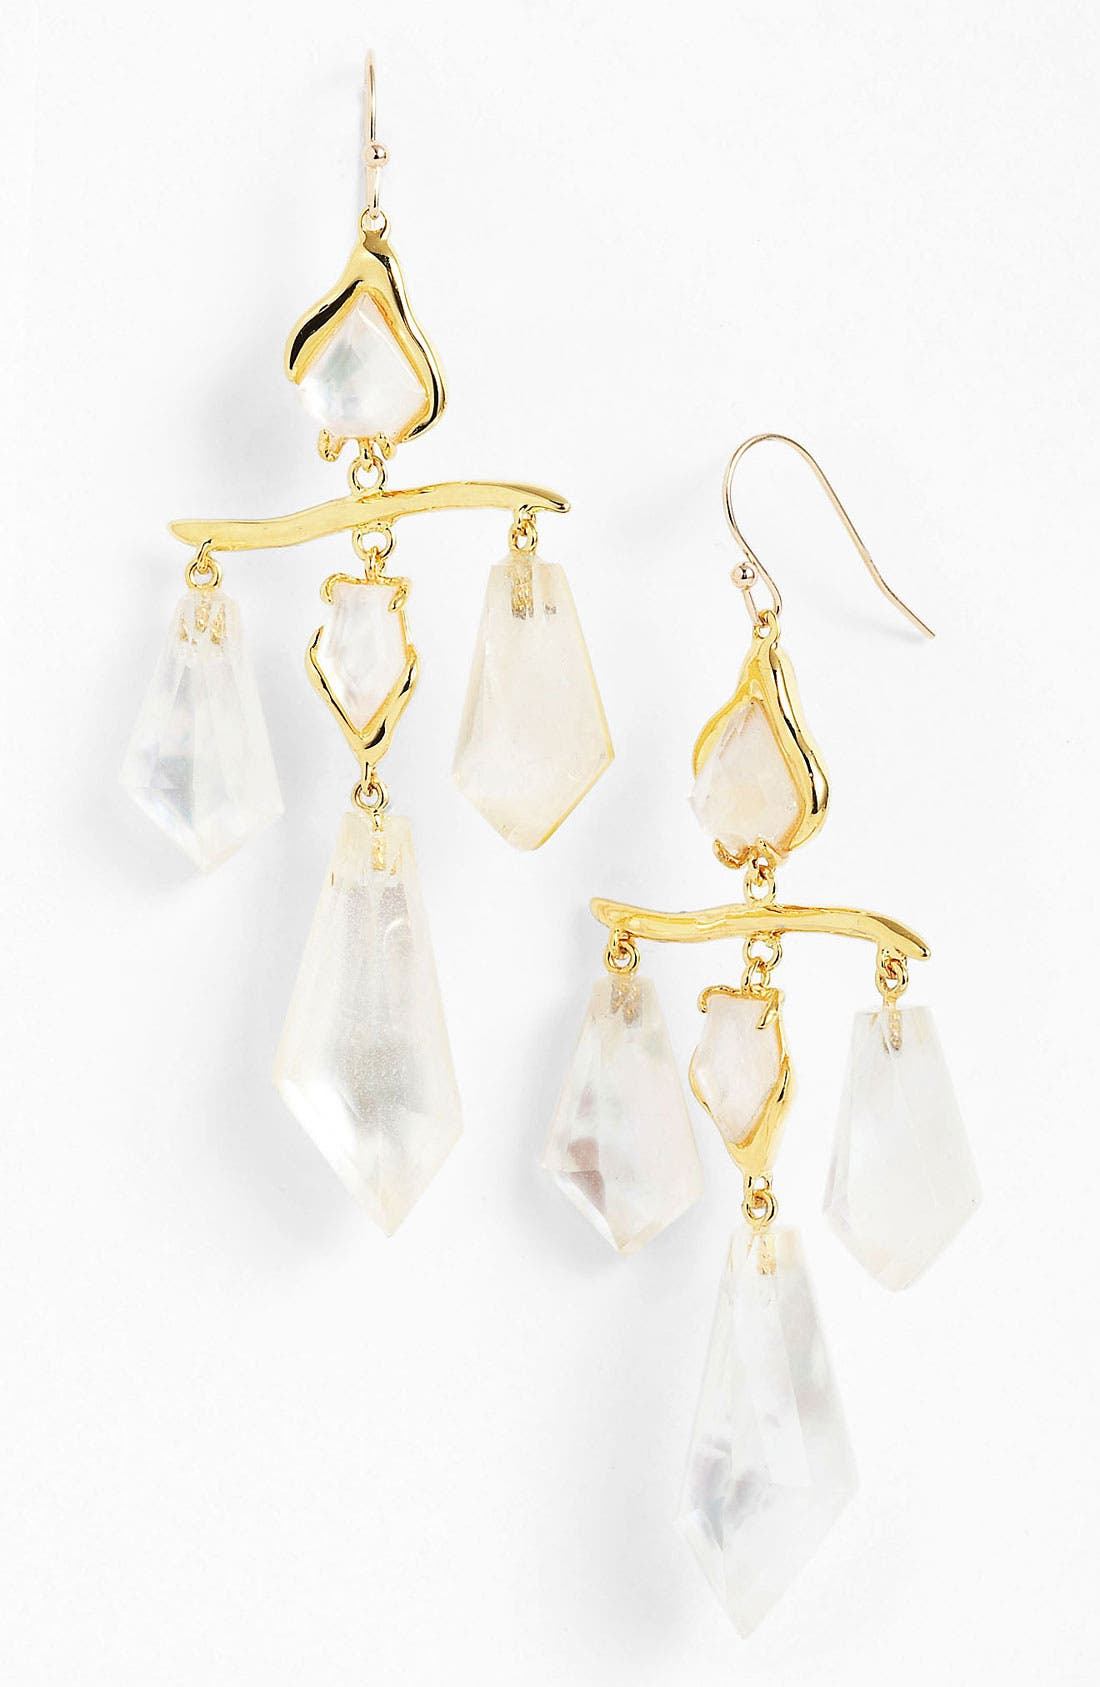 Alternate Image 1 Selected - Alexis Bittar 'Miss Havisham - Bel Air' Chandelier Earrings